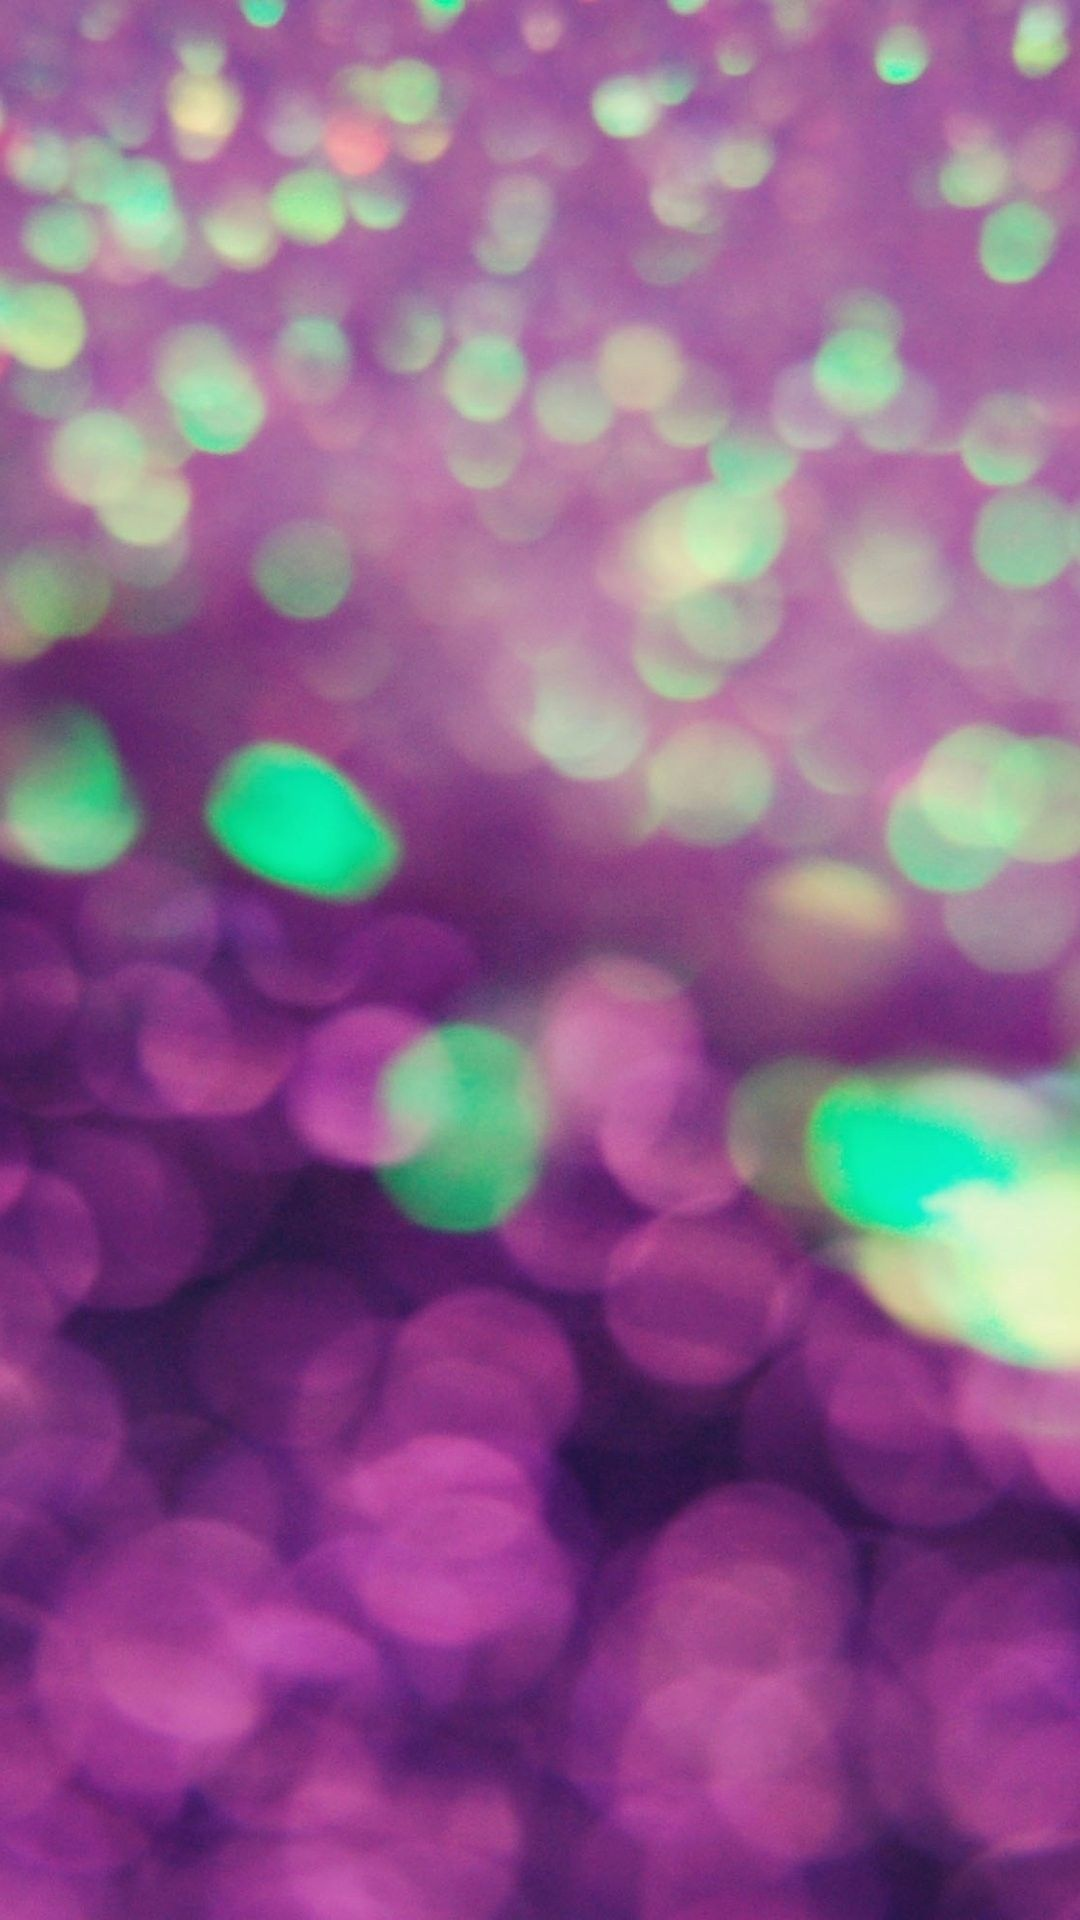 sparkle iphone wallpaper glitter iphone 6 plus wallpaper 9009 other iphone 6 plus 13010